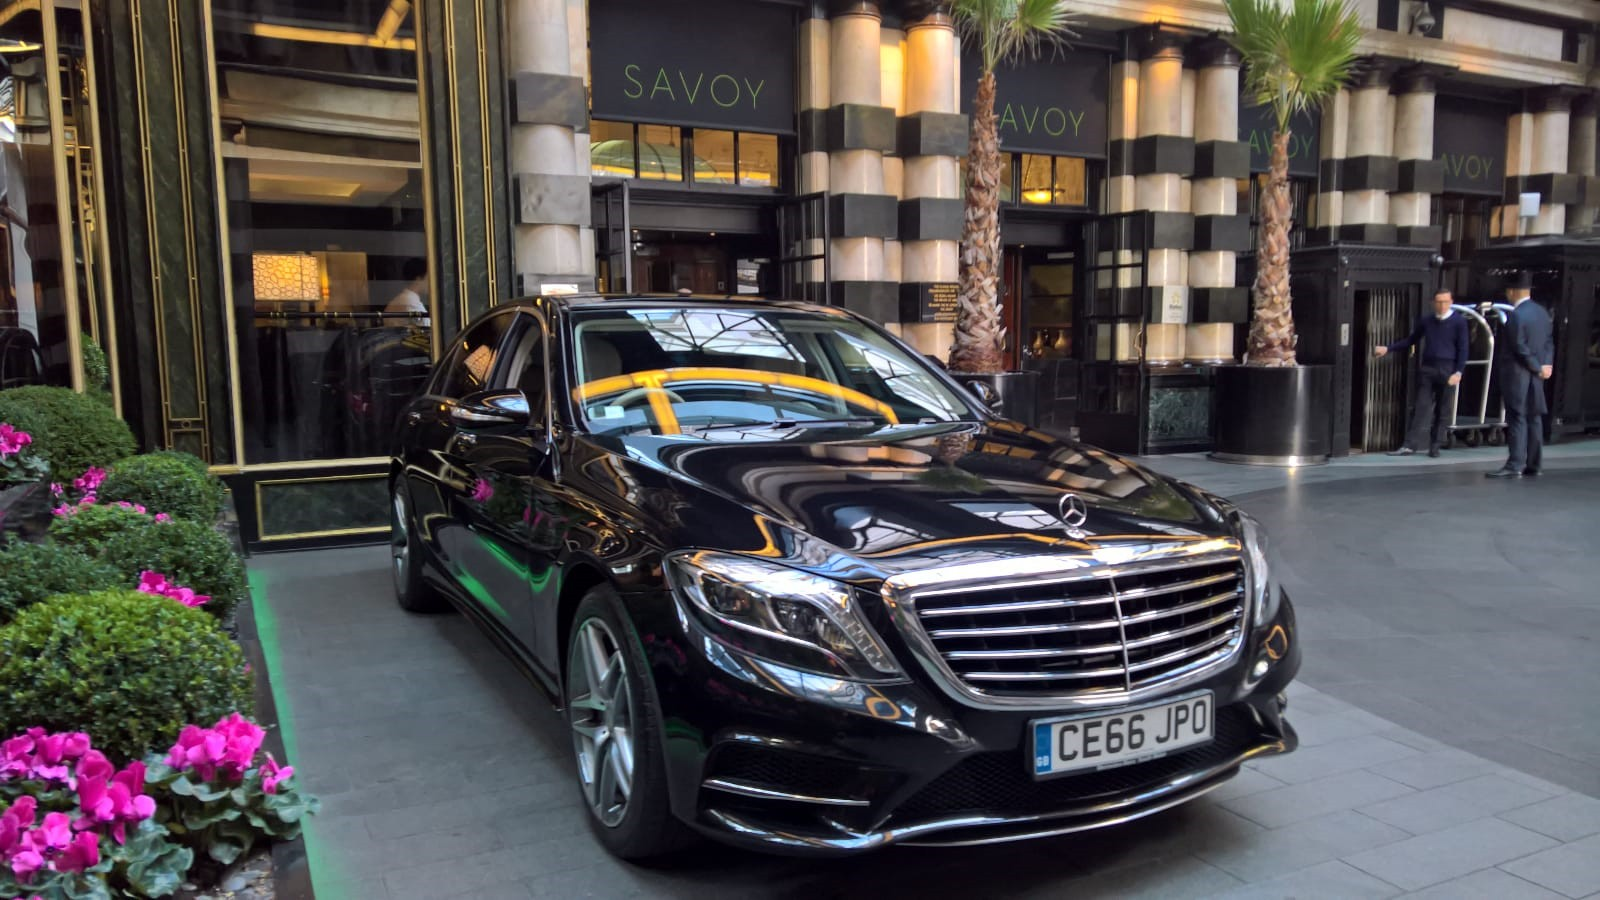 Mercedes Outside Savoy Hotel